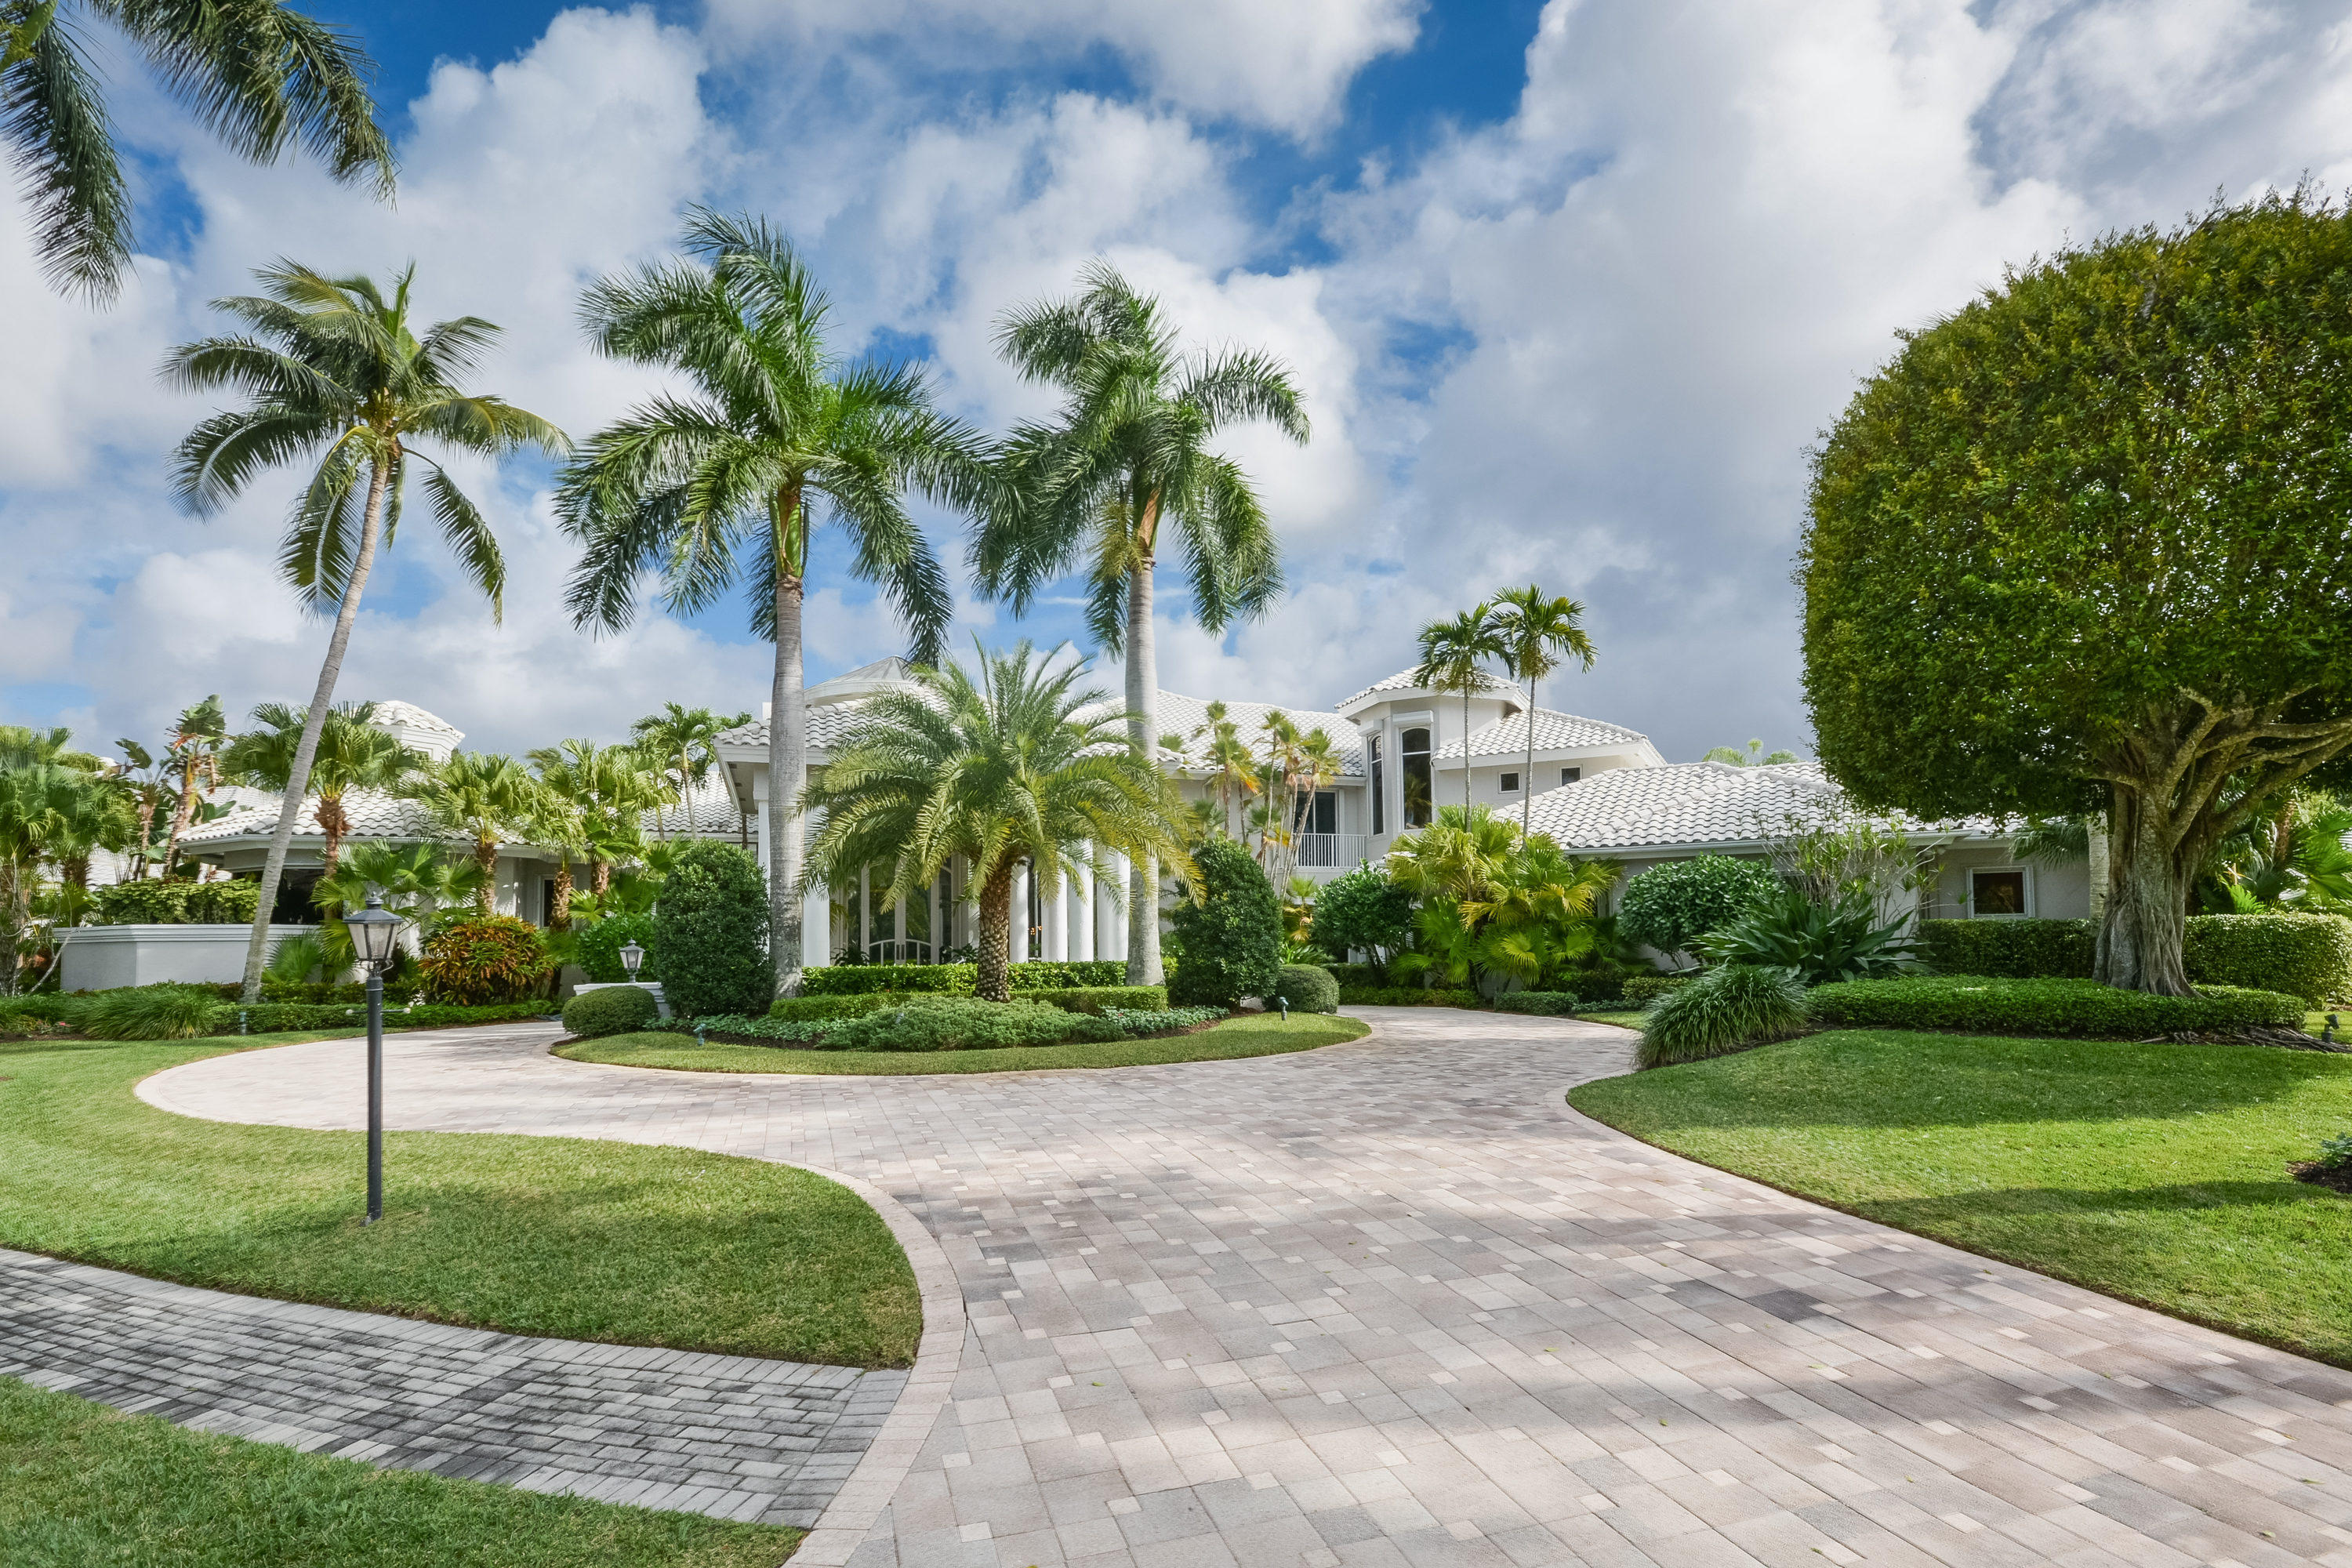 17726 Lake Estates Drive, Boca Raton, Florida 33496, 5 Bedrooms Bedrooms, ,5.1 BathroomsBathrooms,Single Family,For Sale,ST ANDREWS COUNTRY CLUB,Lake Estates,RX-10289713